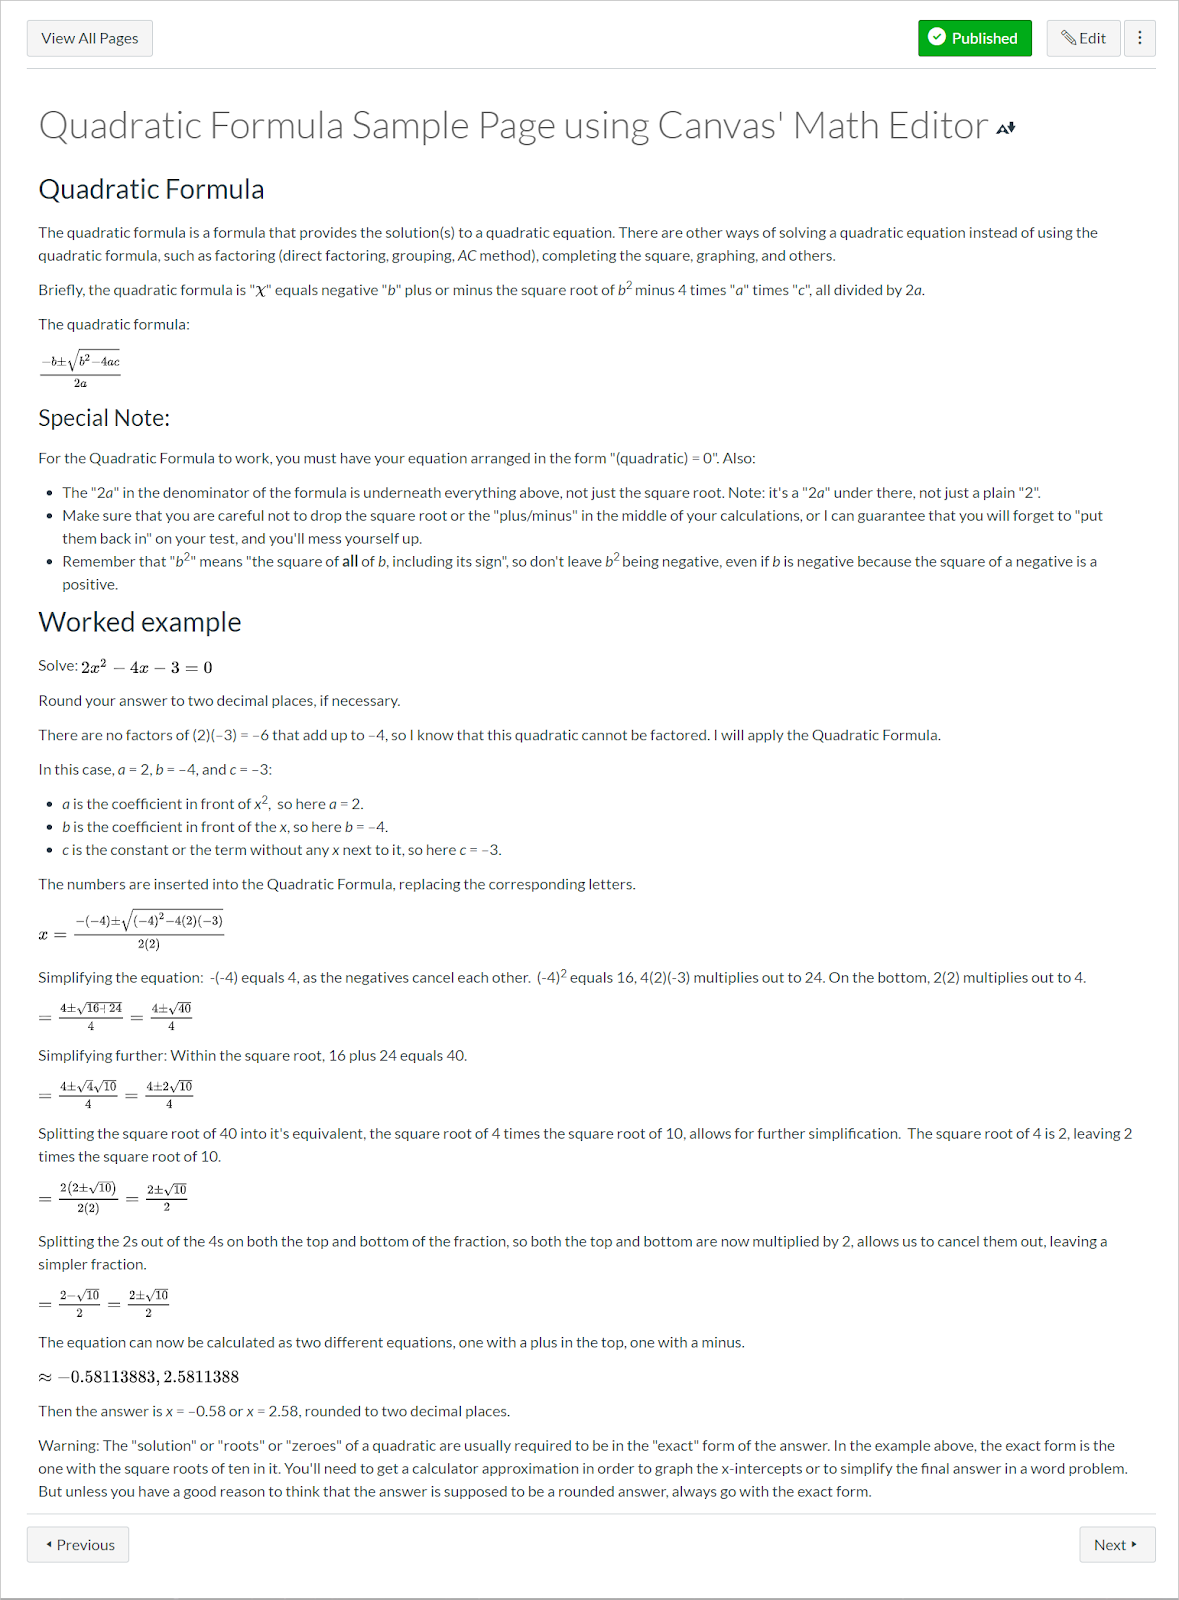 Canvas page that provides additional textual description of how to solve a mathematical equation step-by-step.